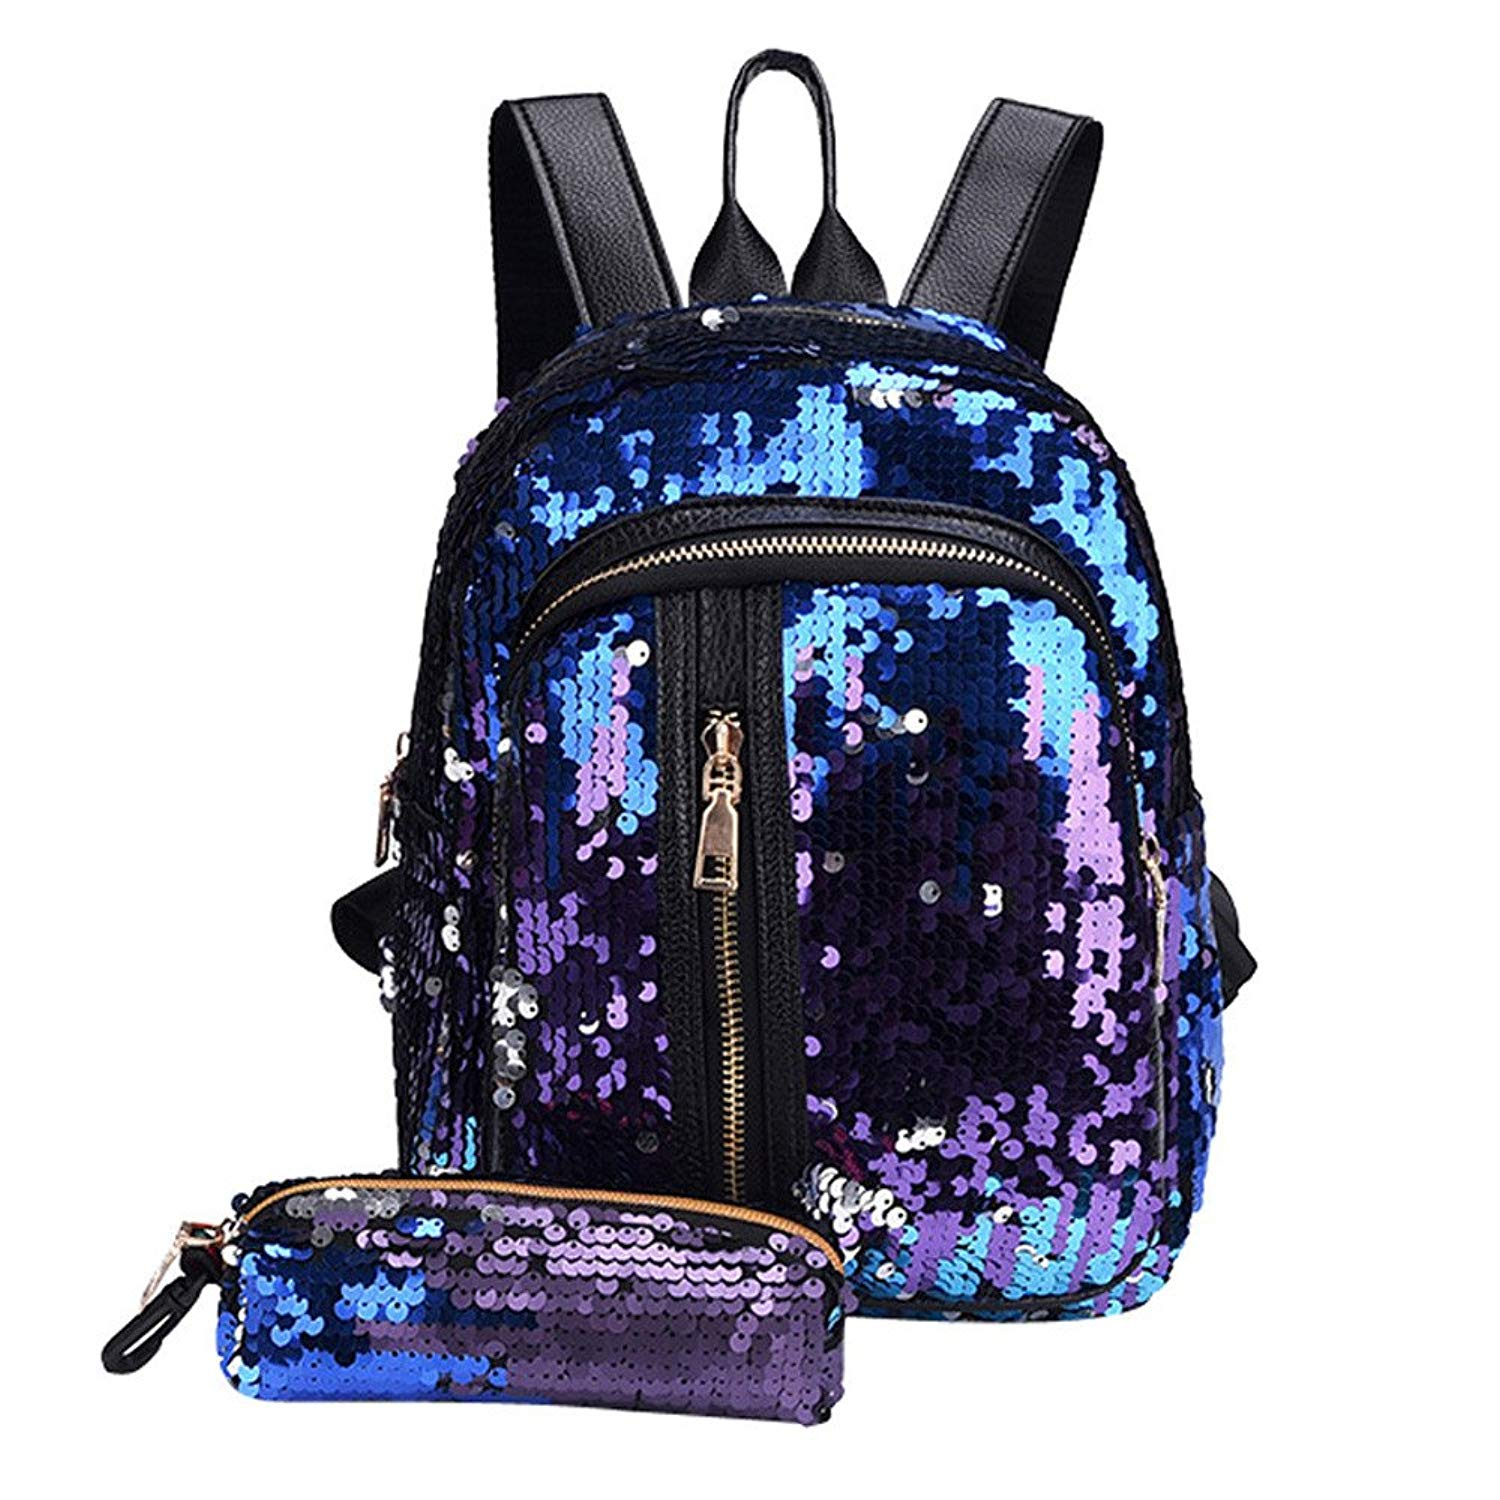 Liraly Women Bags,Big Promotion! 2018 Girl Sequin School Bag Backpack Travel Shoulder Bag+Clutch Wallet